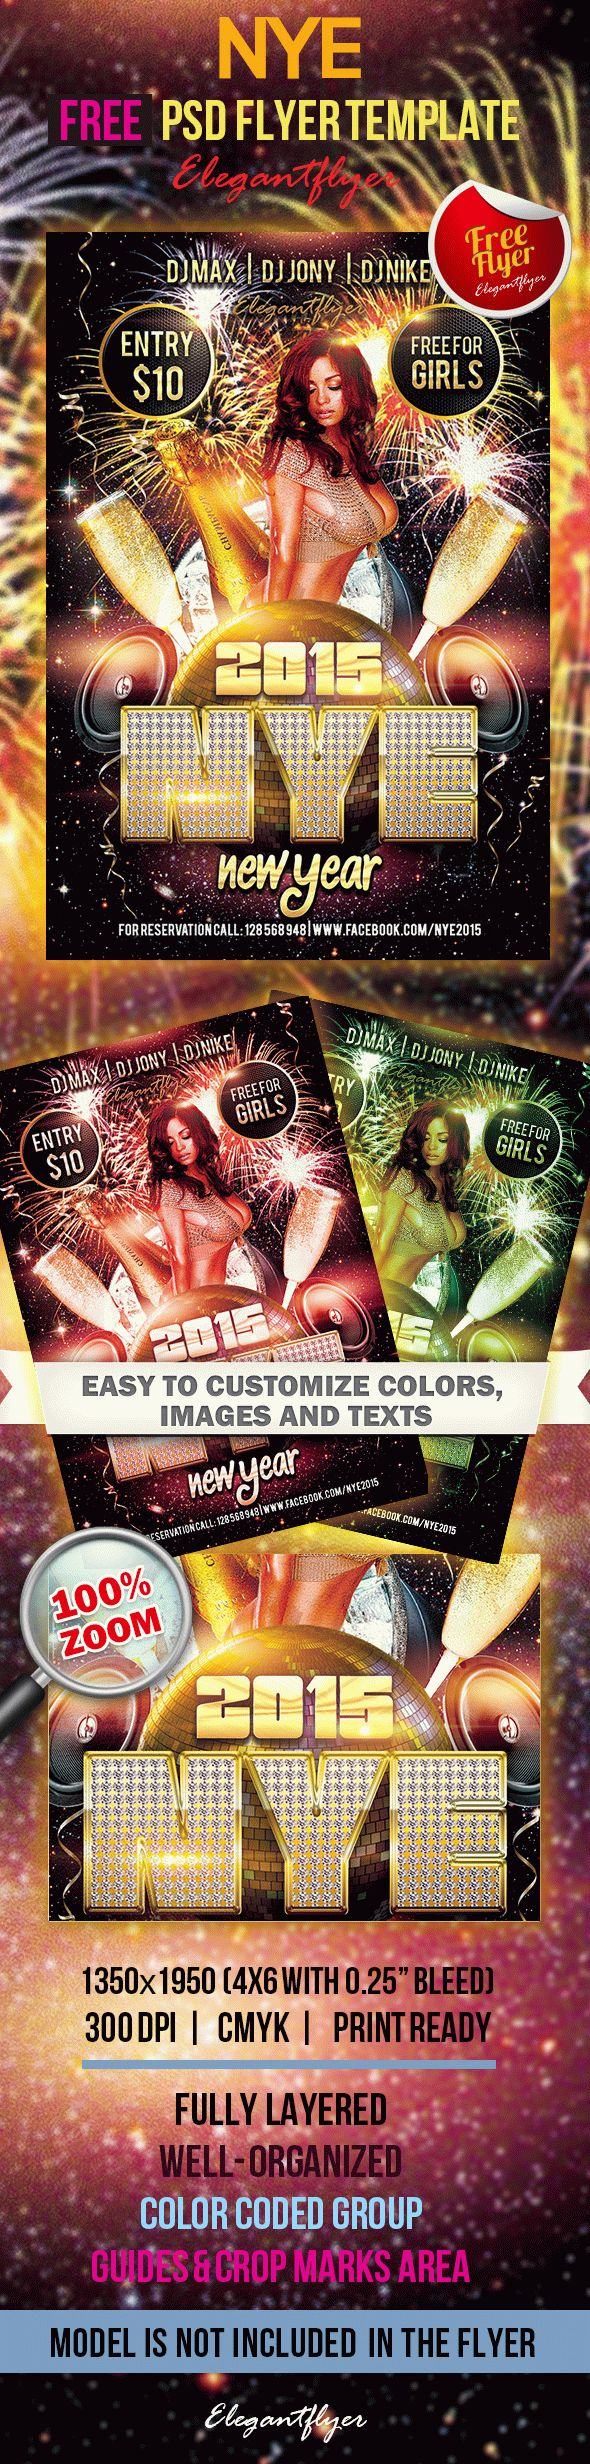 new year free club and party flyer psd template